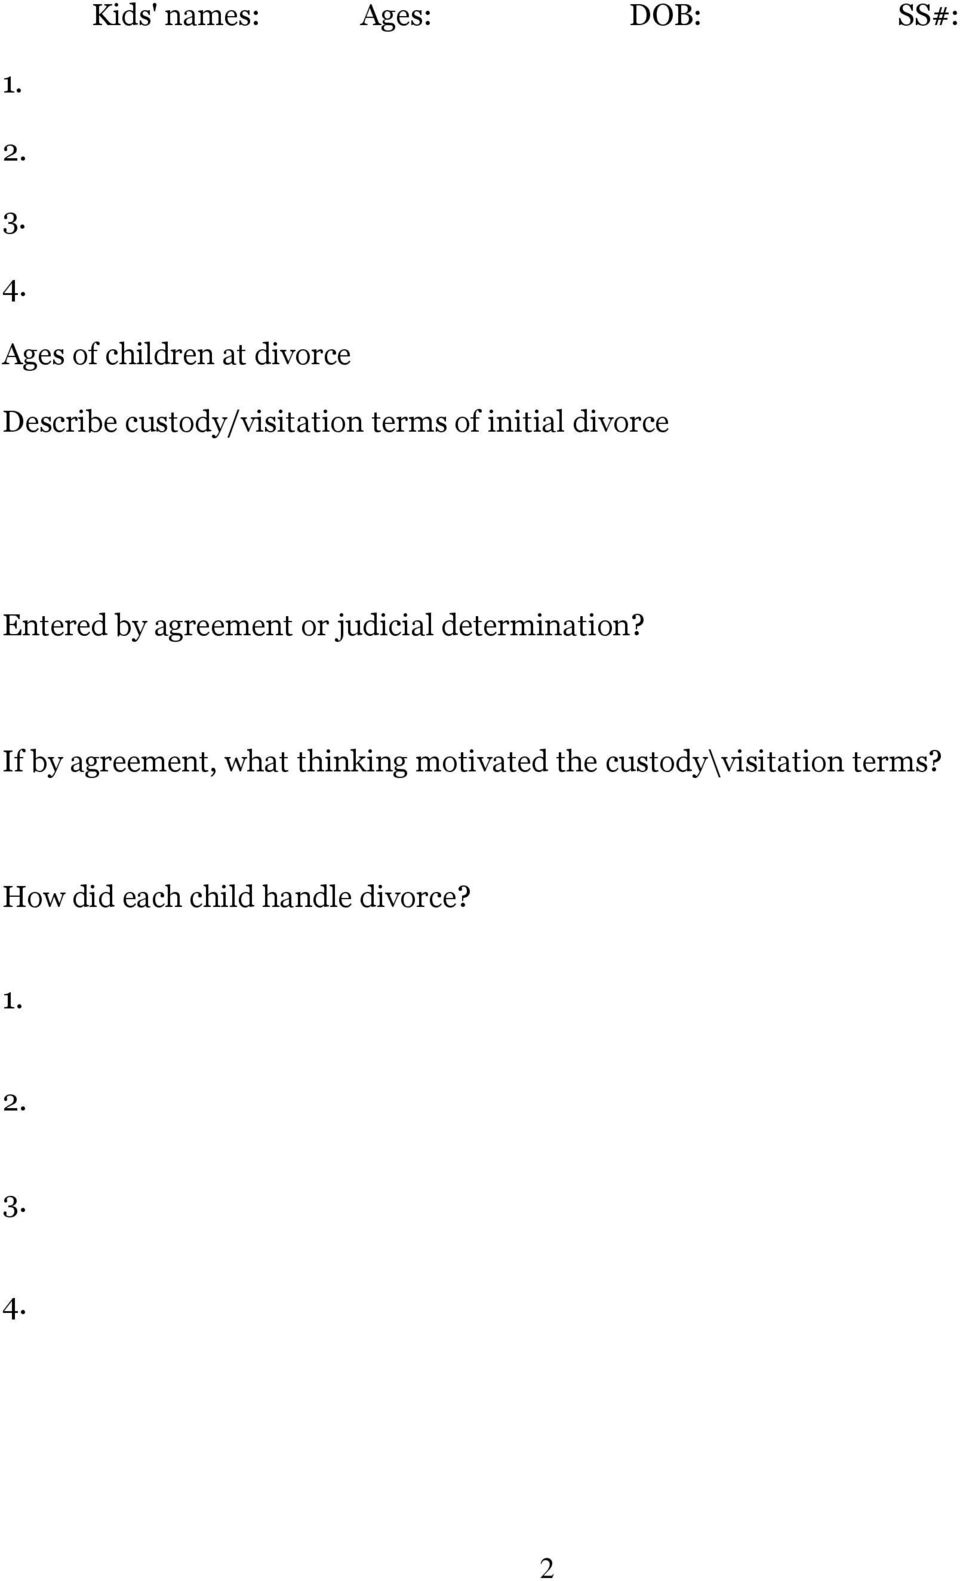 divorce Entered by agreement or judicial determination?